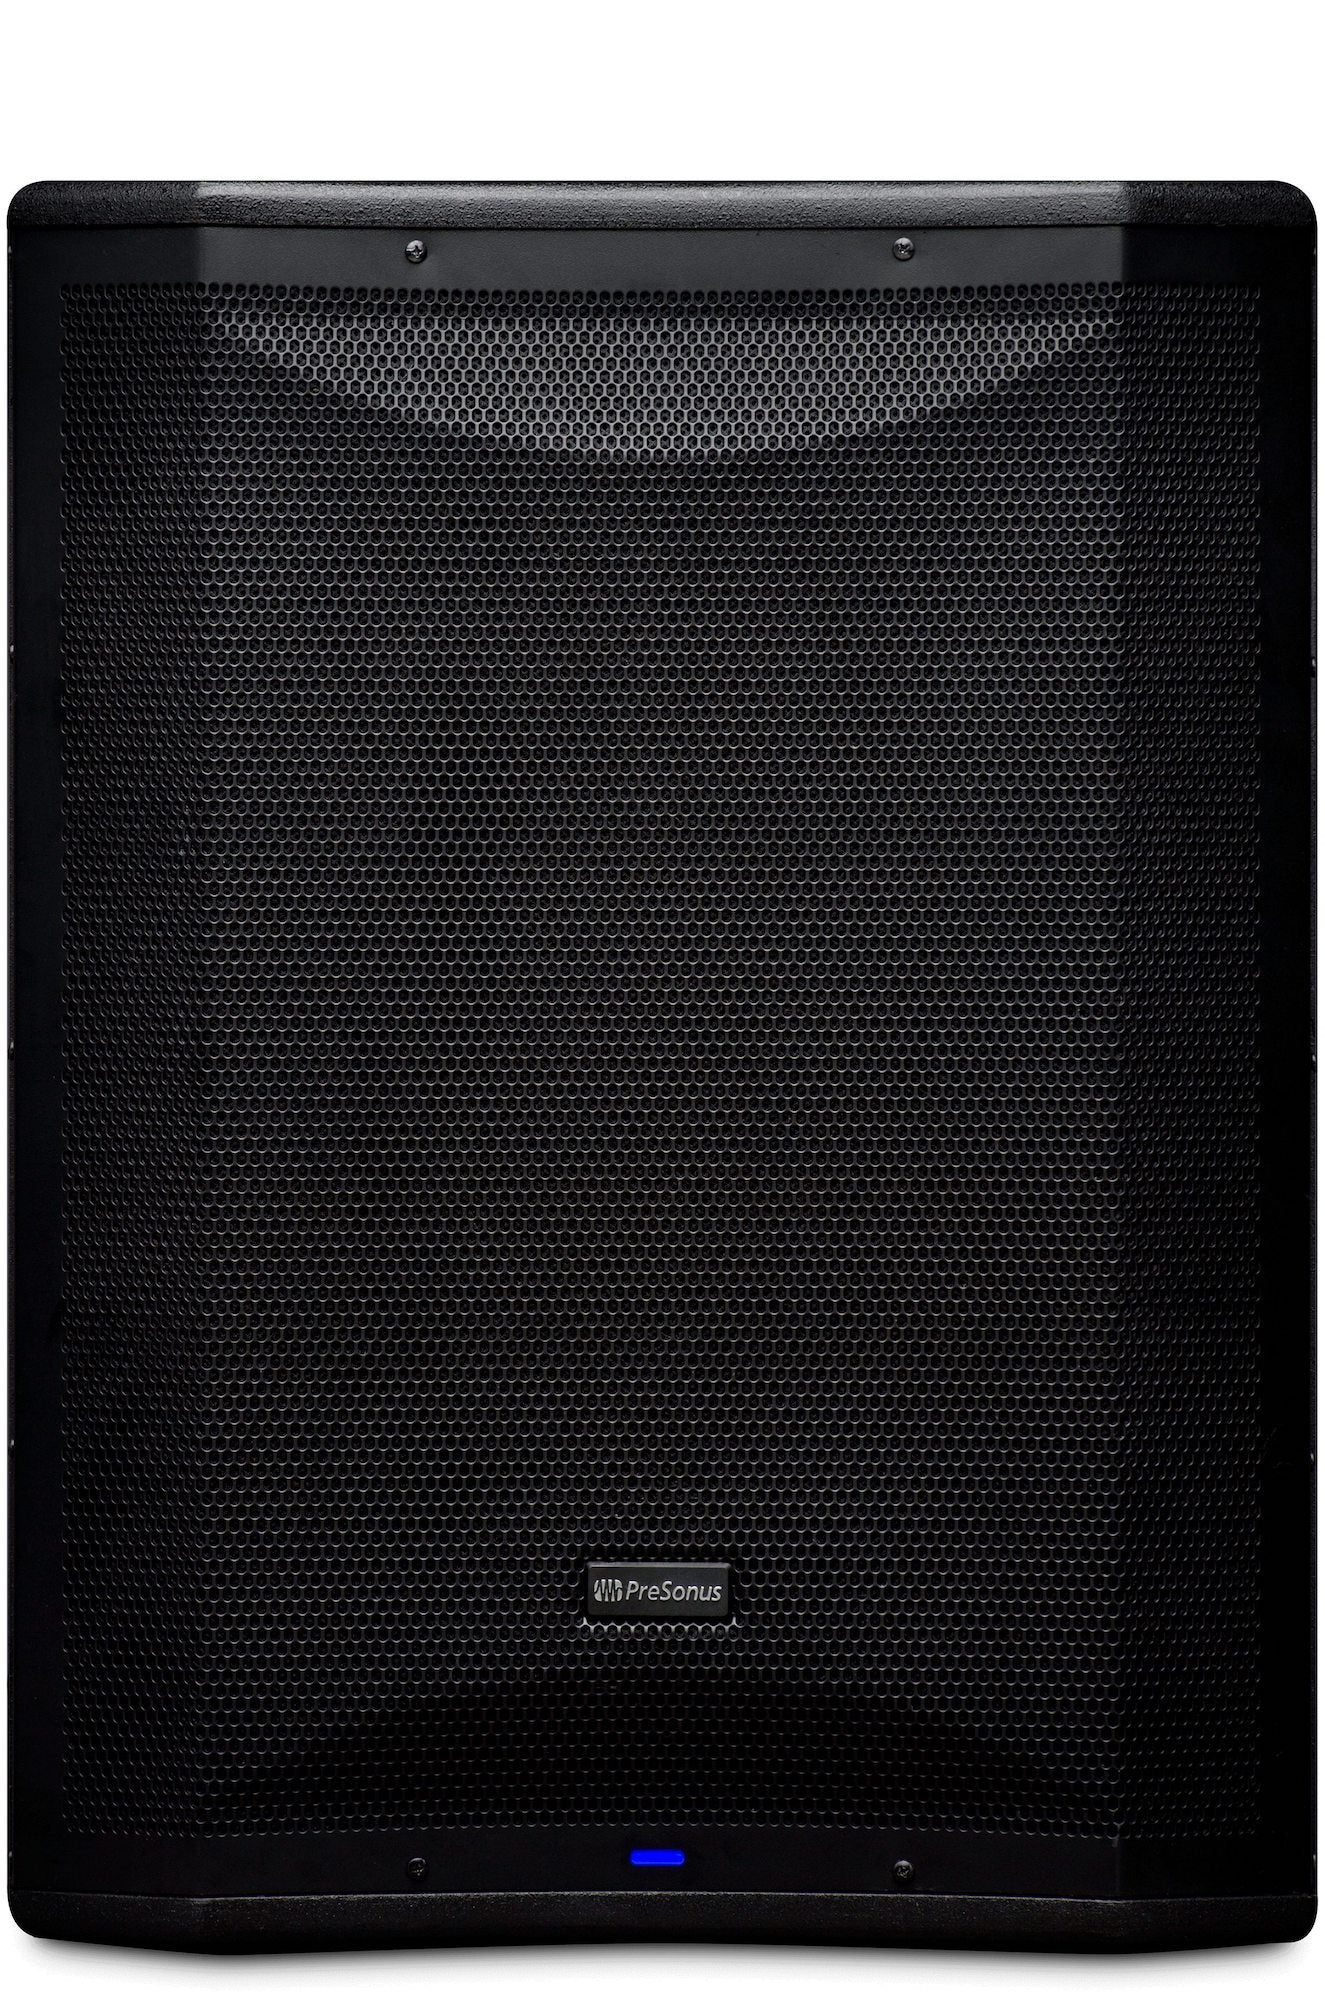 PreSonus Air 1200W Powered Subwoofer Speakers